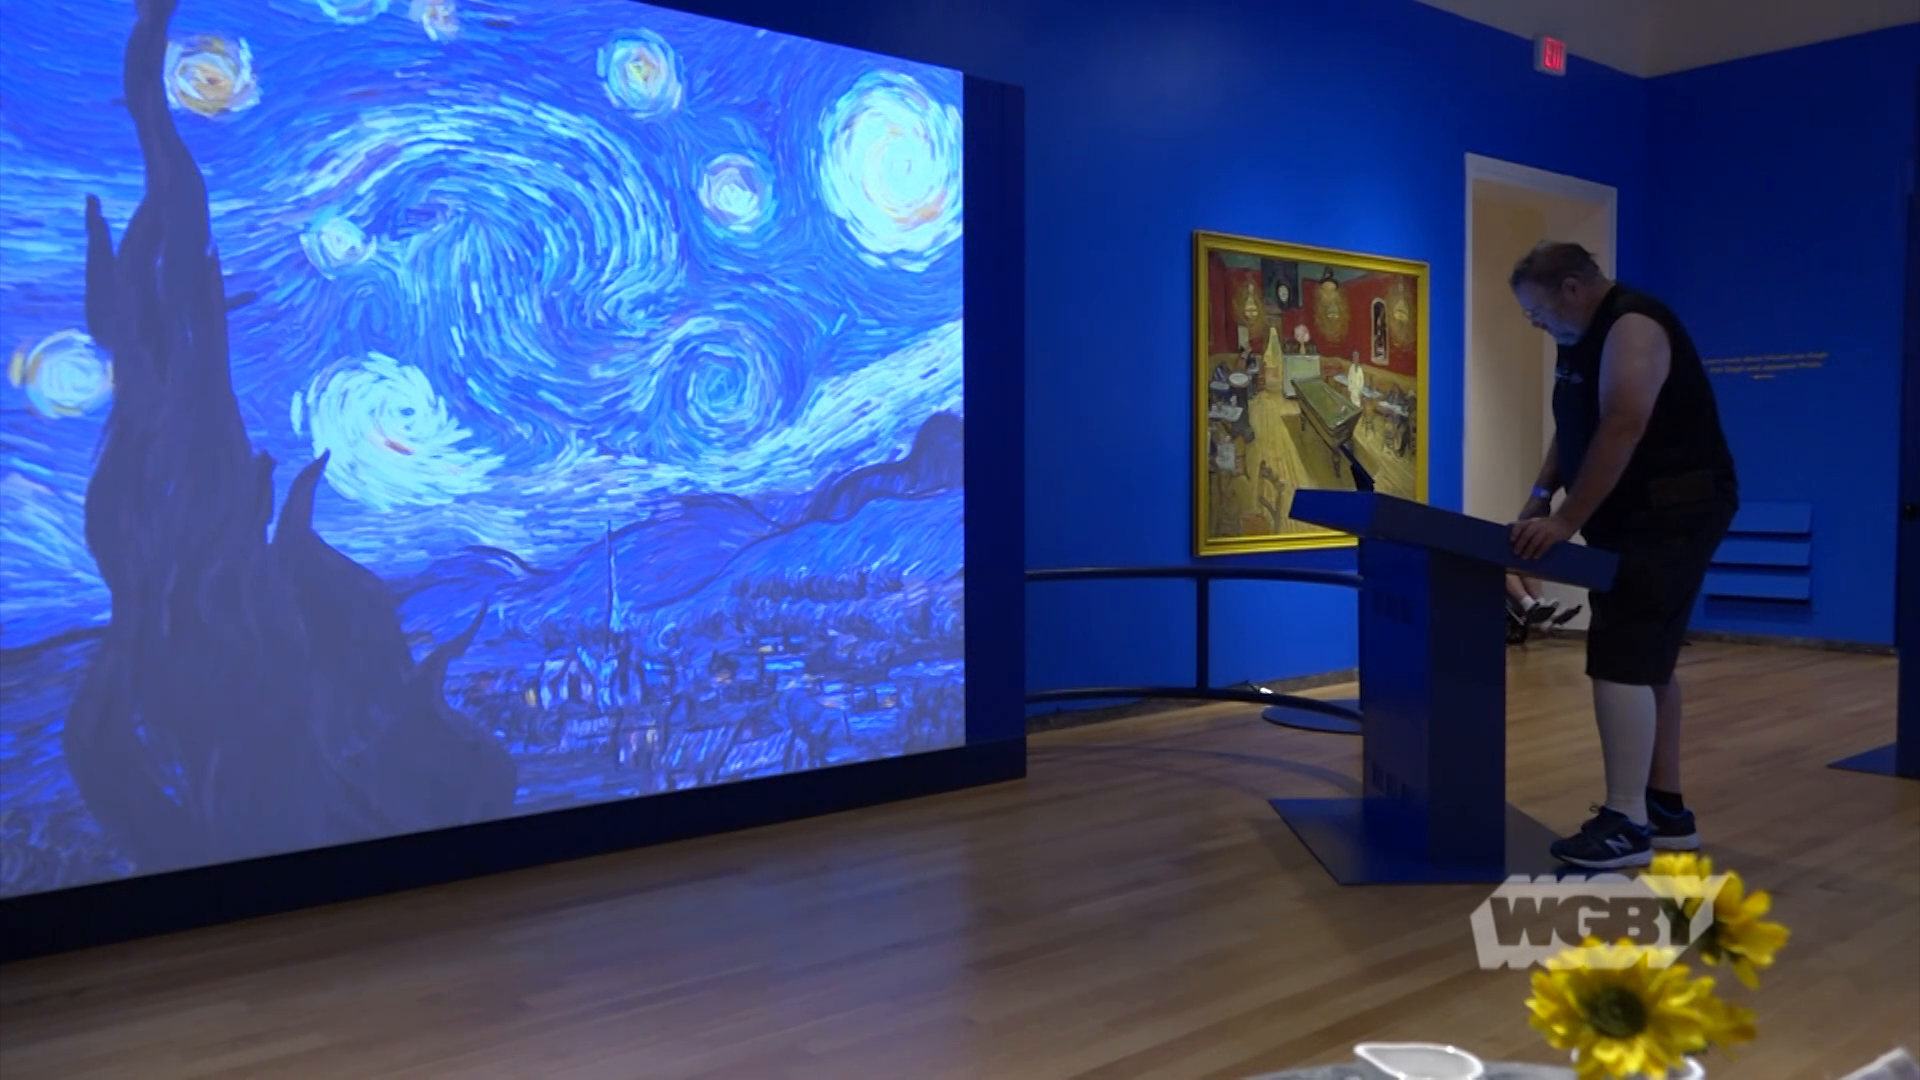 Springfield Museums' Van Gogh For All highlighs the famous impressionist artist's work through a unique, interactive exhibit.